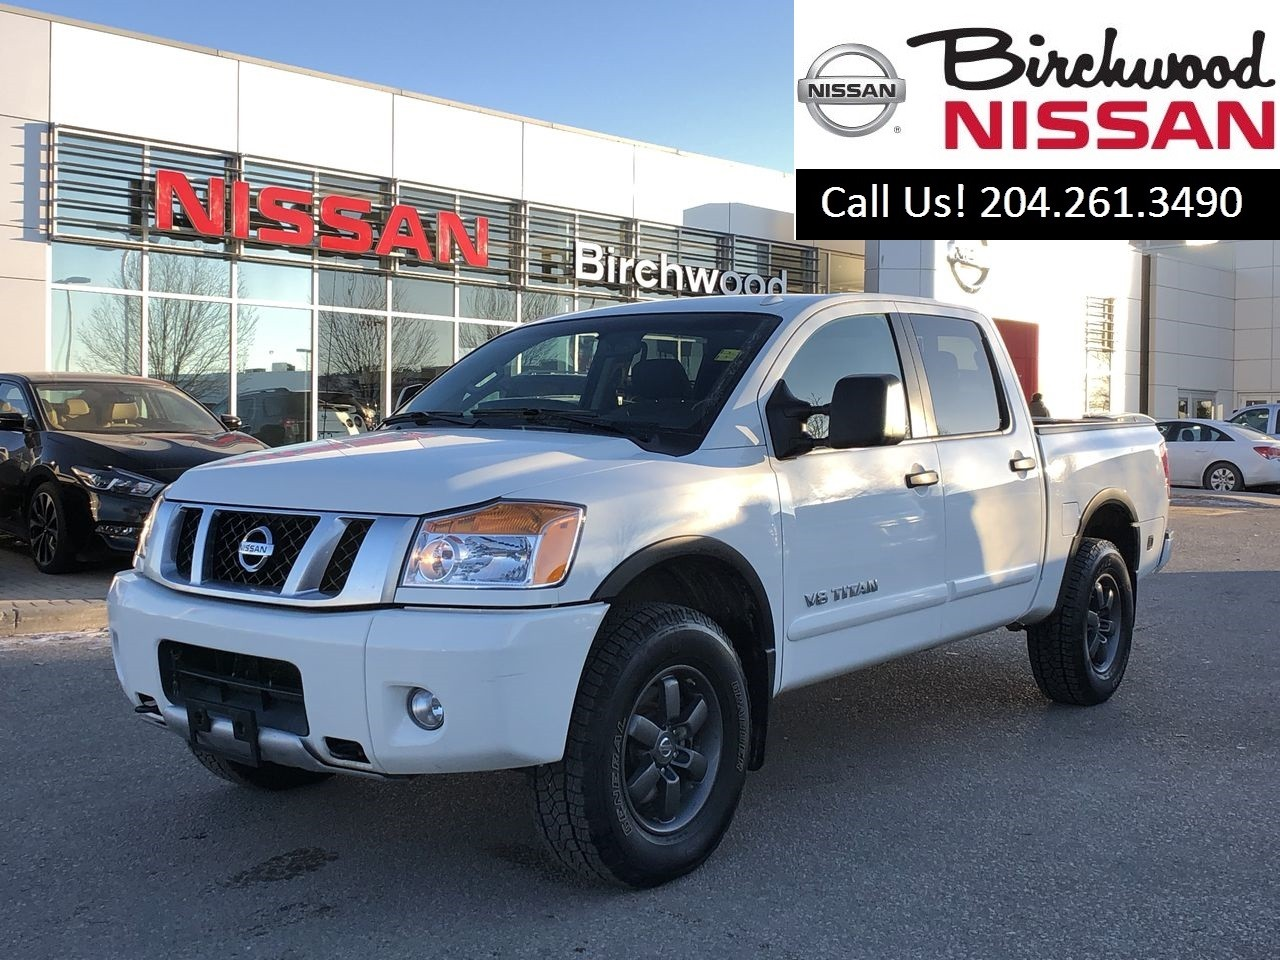 2015 Nissan Titan PRO-4X Bought And Serviced At Birchwood Nissan! Truck